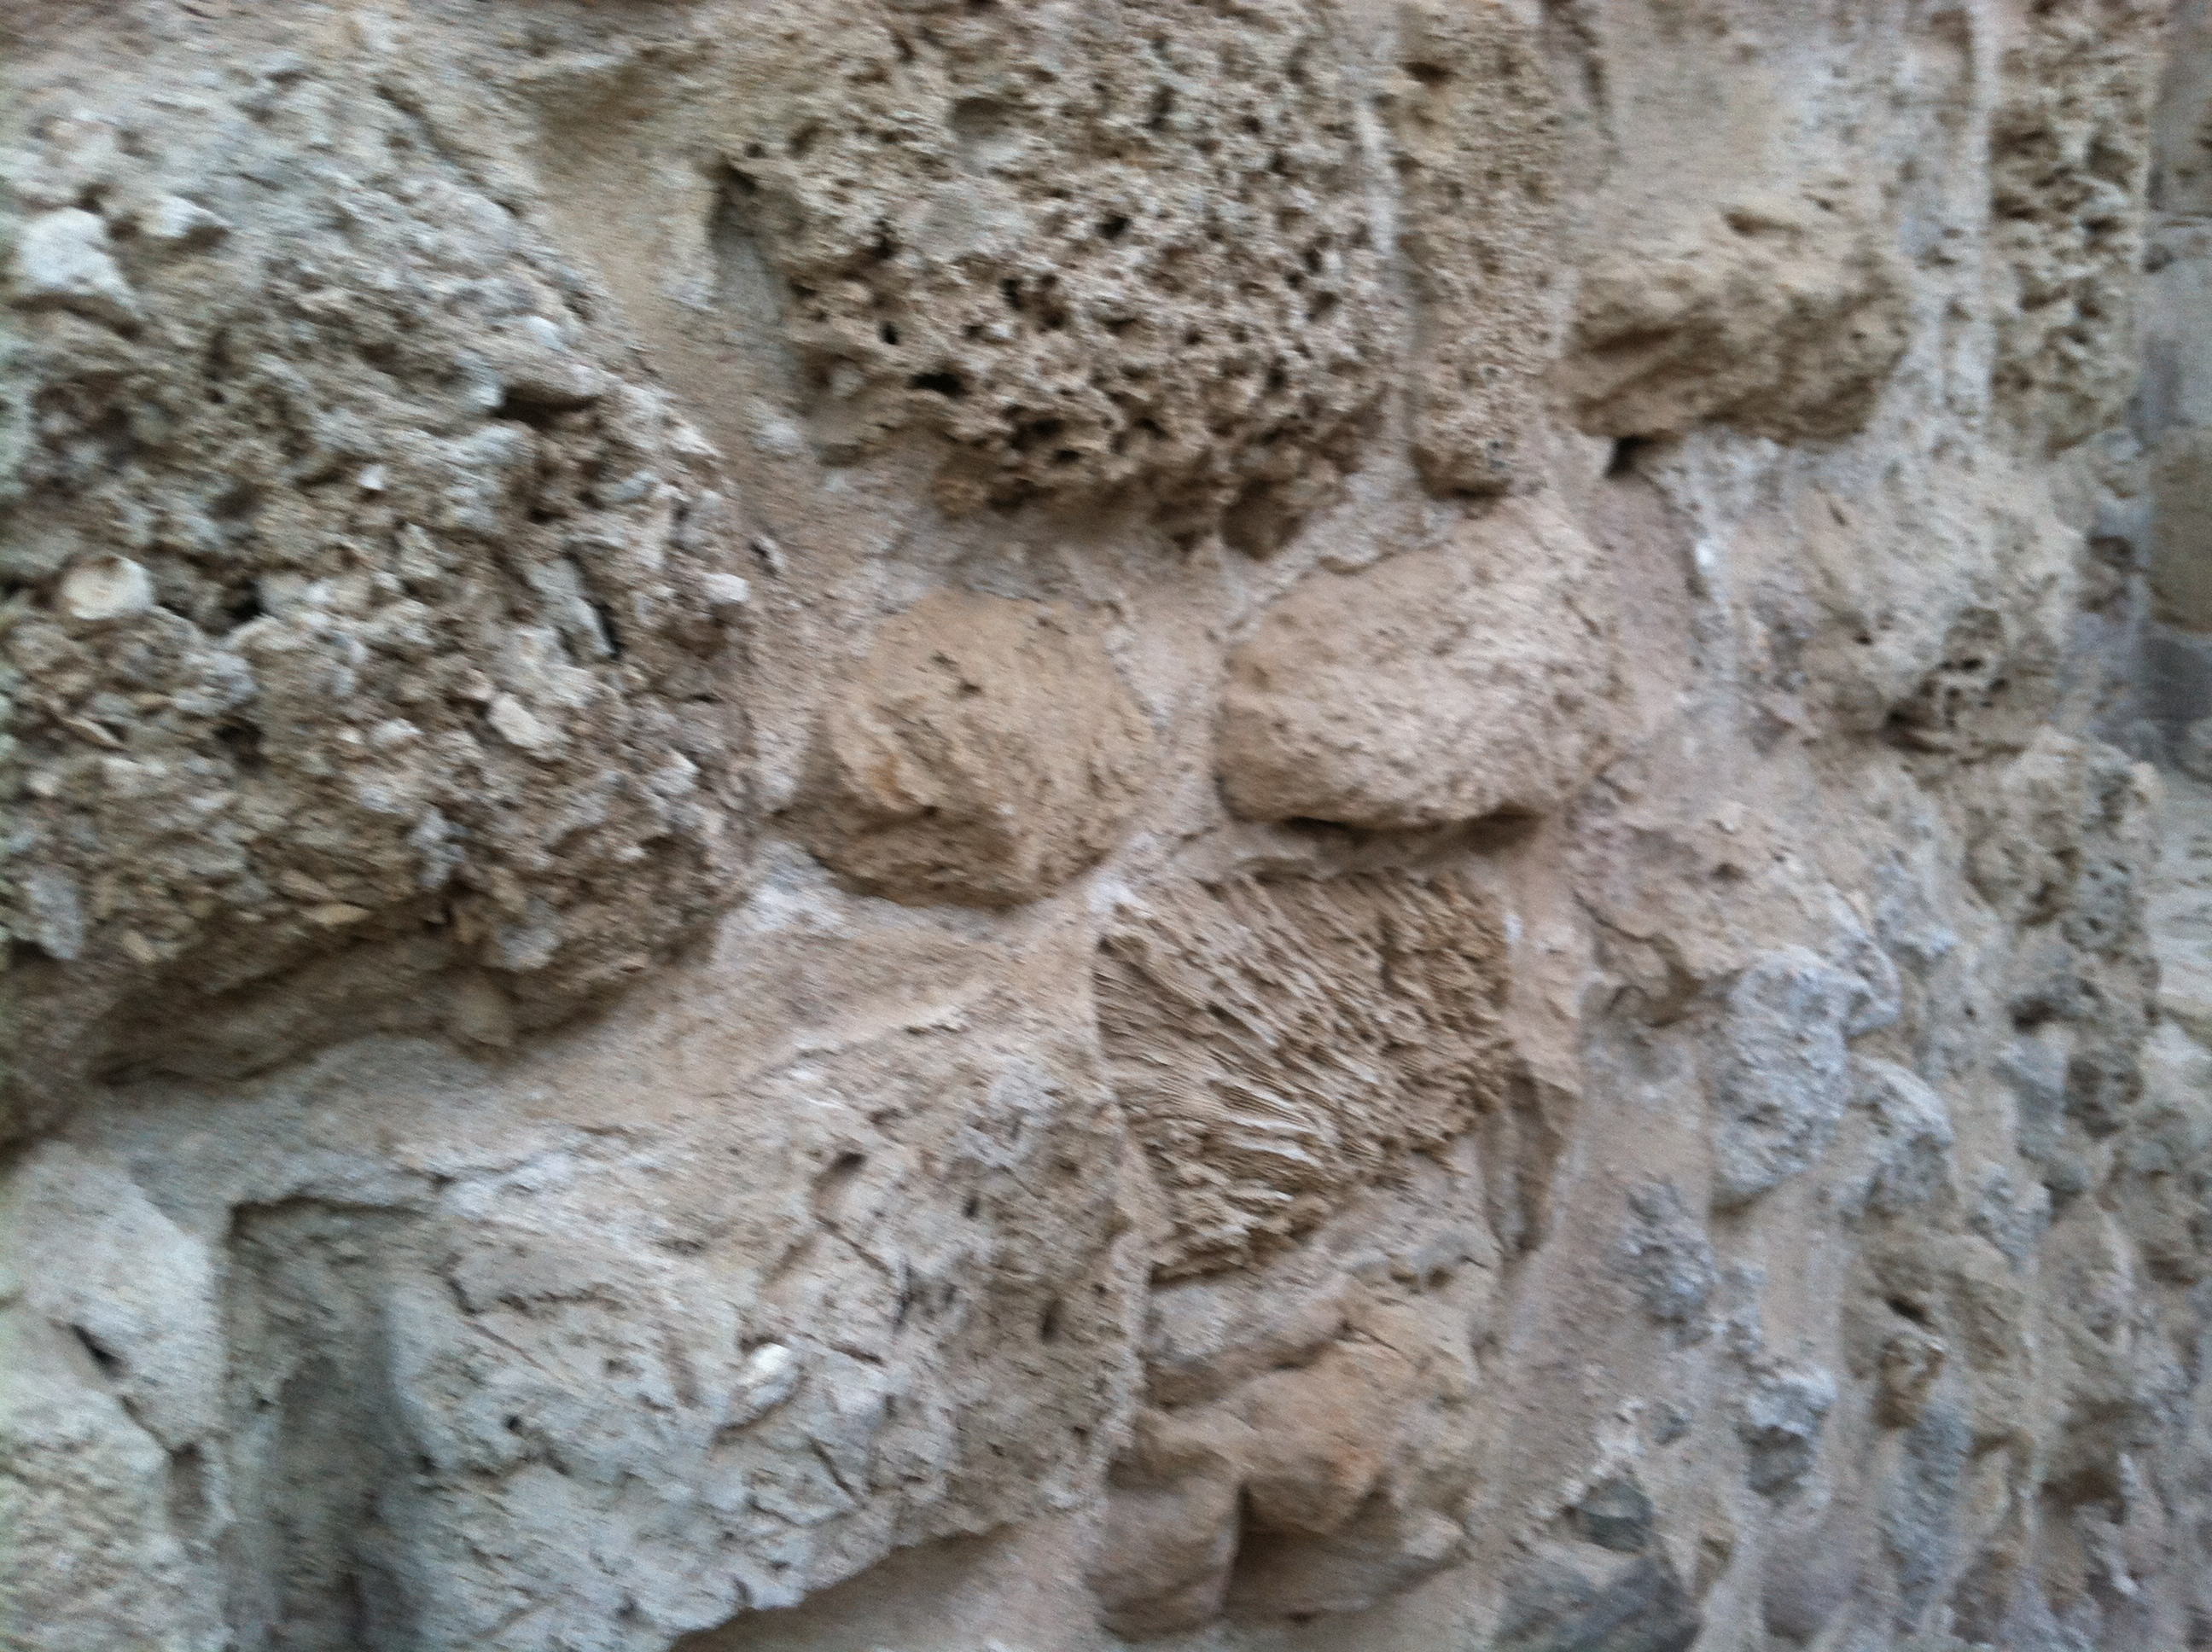 Corals were included in the walls of this historic Portuguese fort on Bahrain's coast